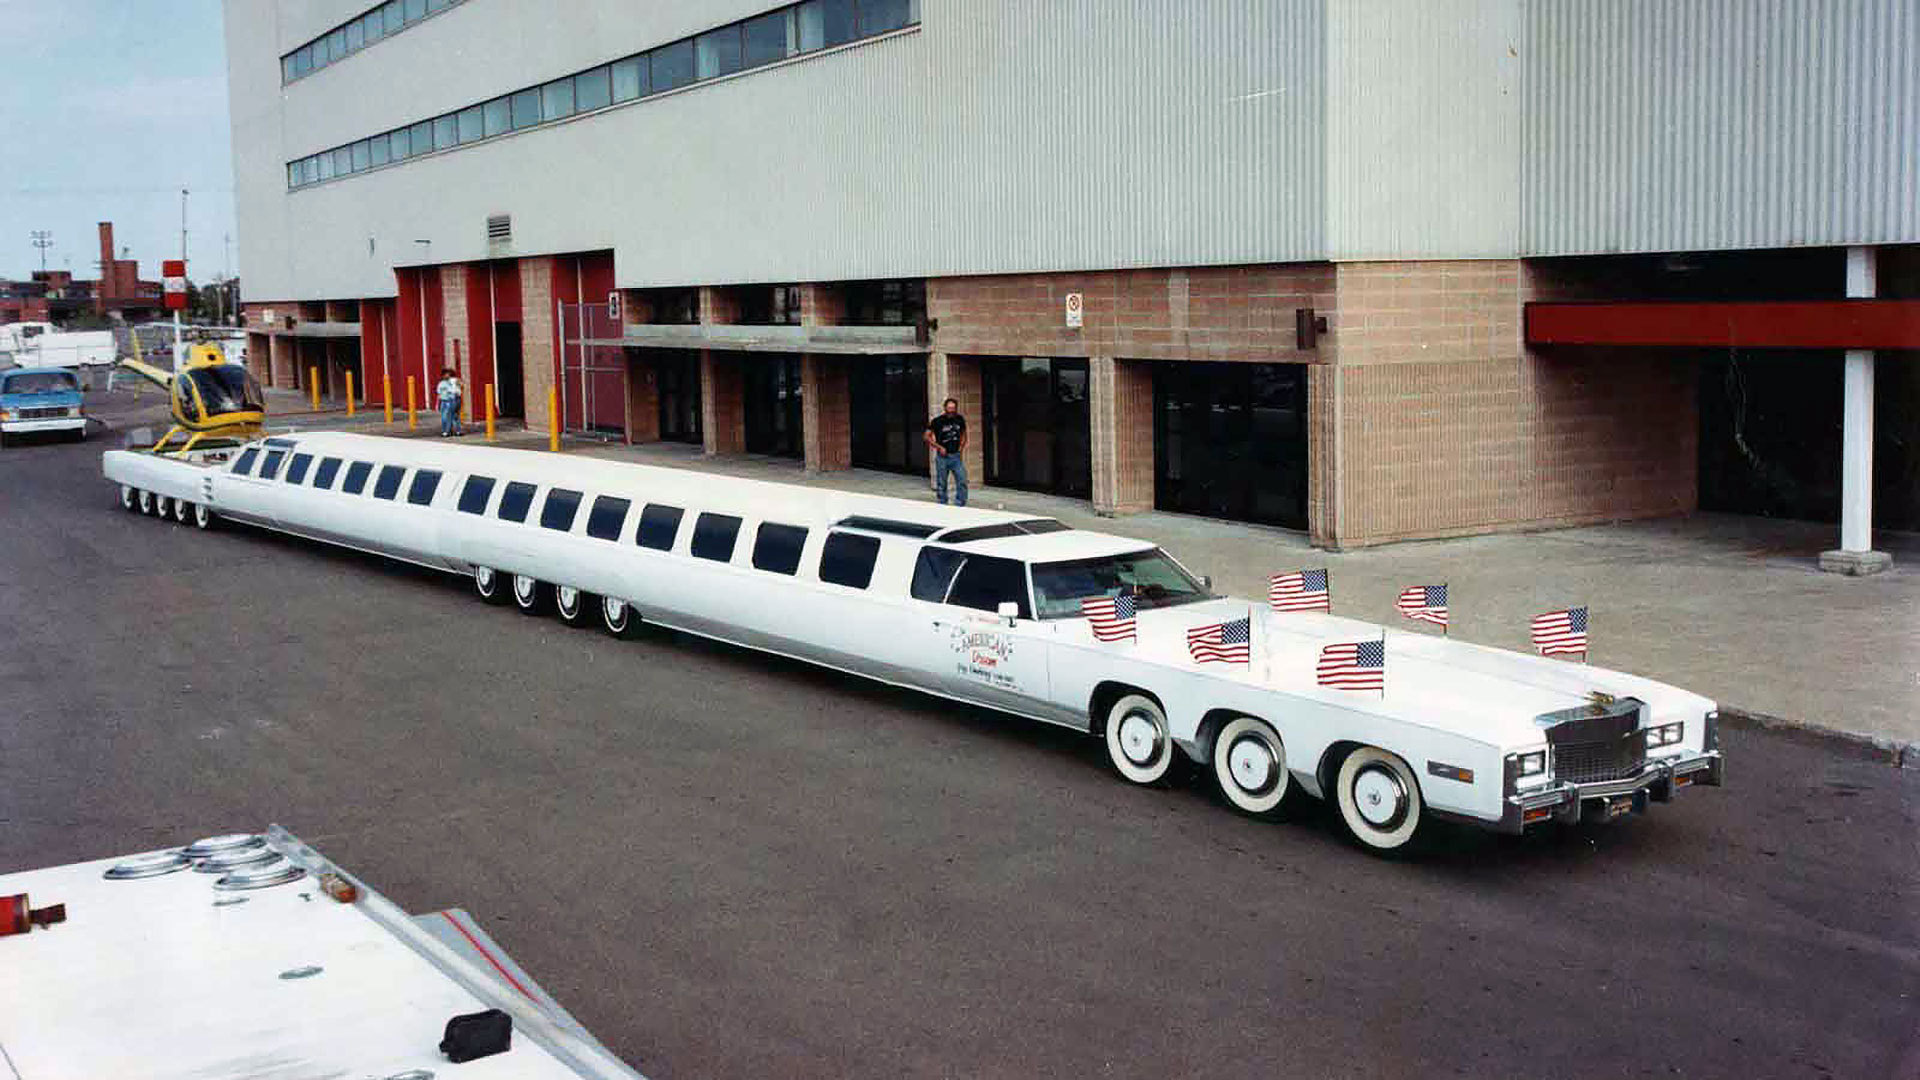 引用 : https://www.motor1.com/news/75965/the-longest-car-in-the-world-is-dead-but-its-coming-back-to-life/